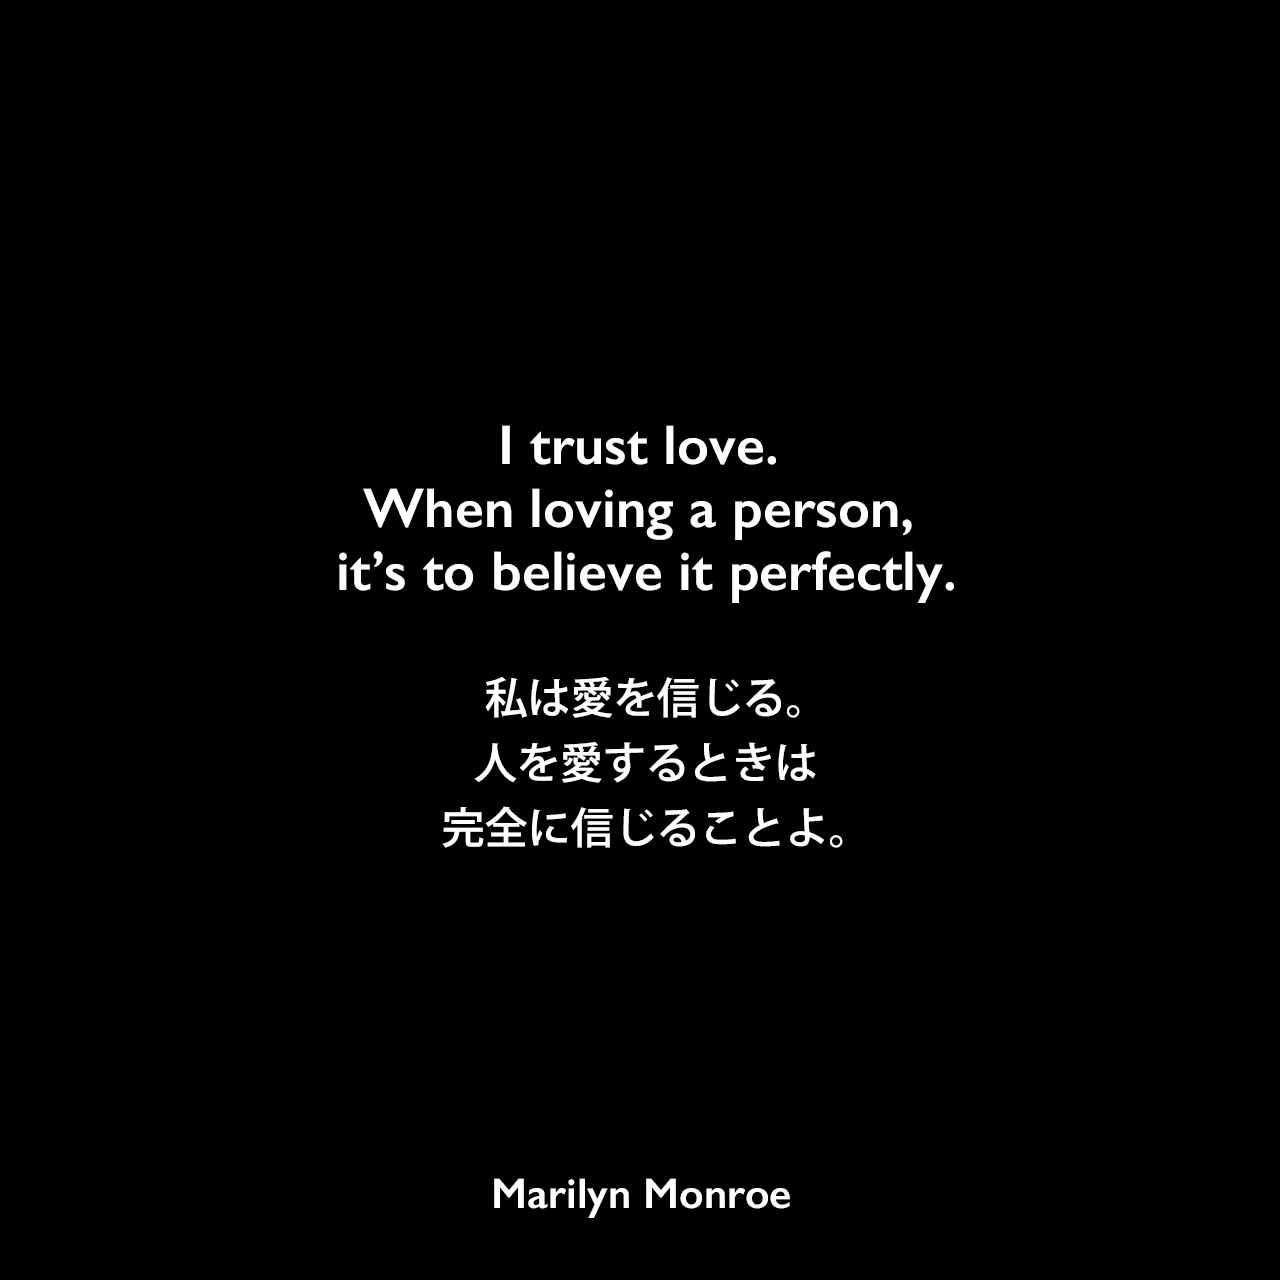 I trust love. When loving a person, it's to believe it perfectly.私は愛を信じる。人を愛するときは完全に信じることよ。Marilyn Monroe